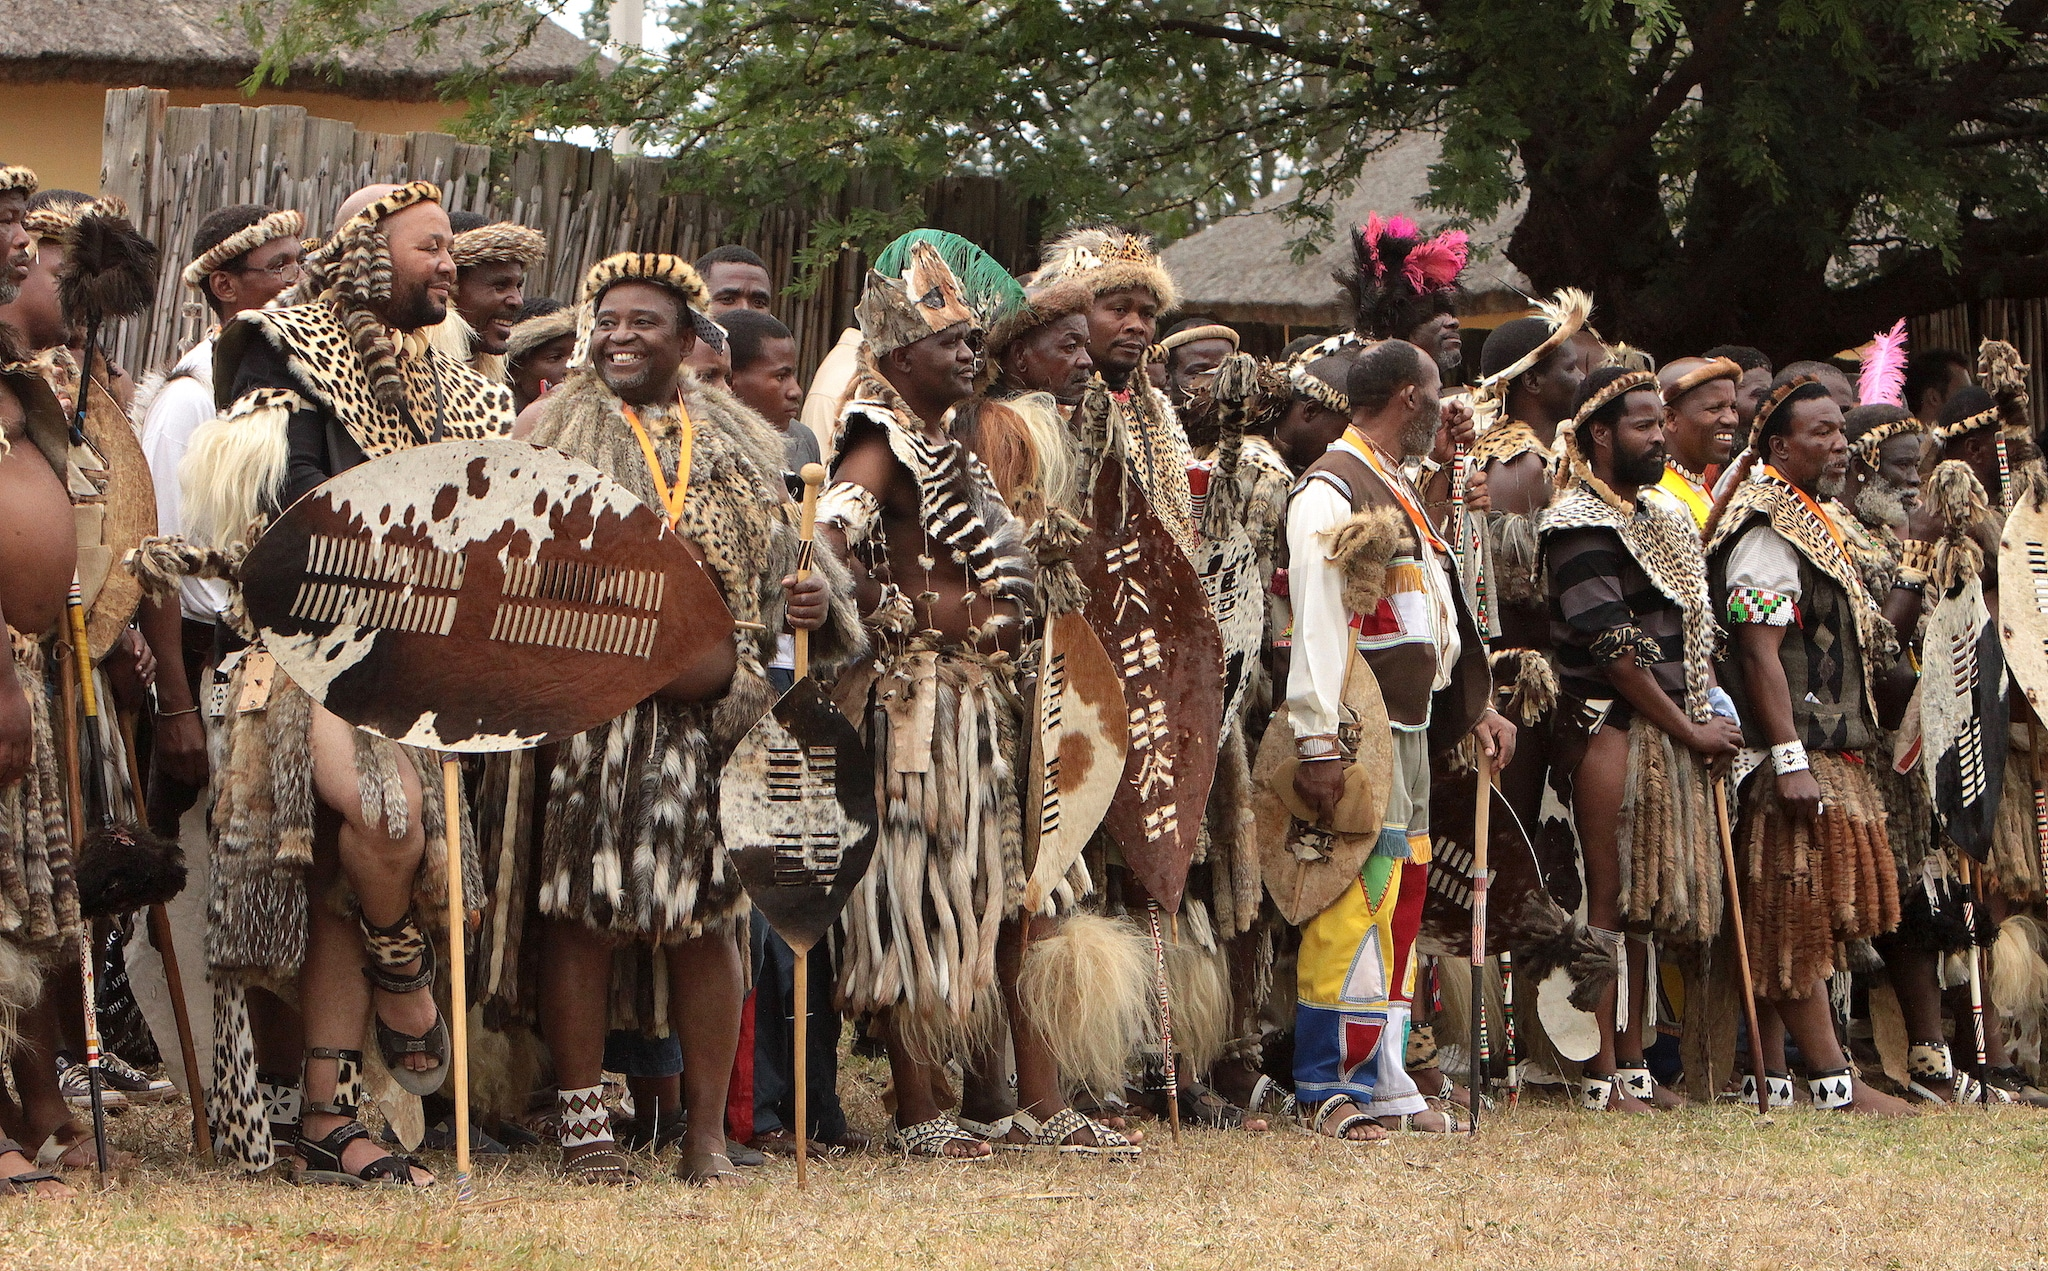 South Africa Zulu Tribe Reed Dance Ceremony